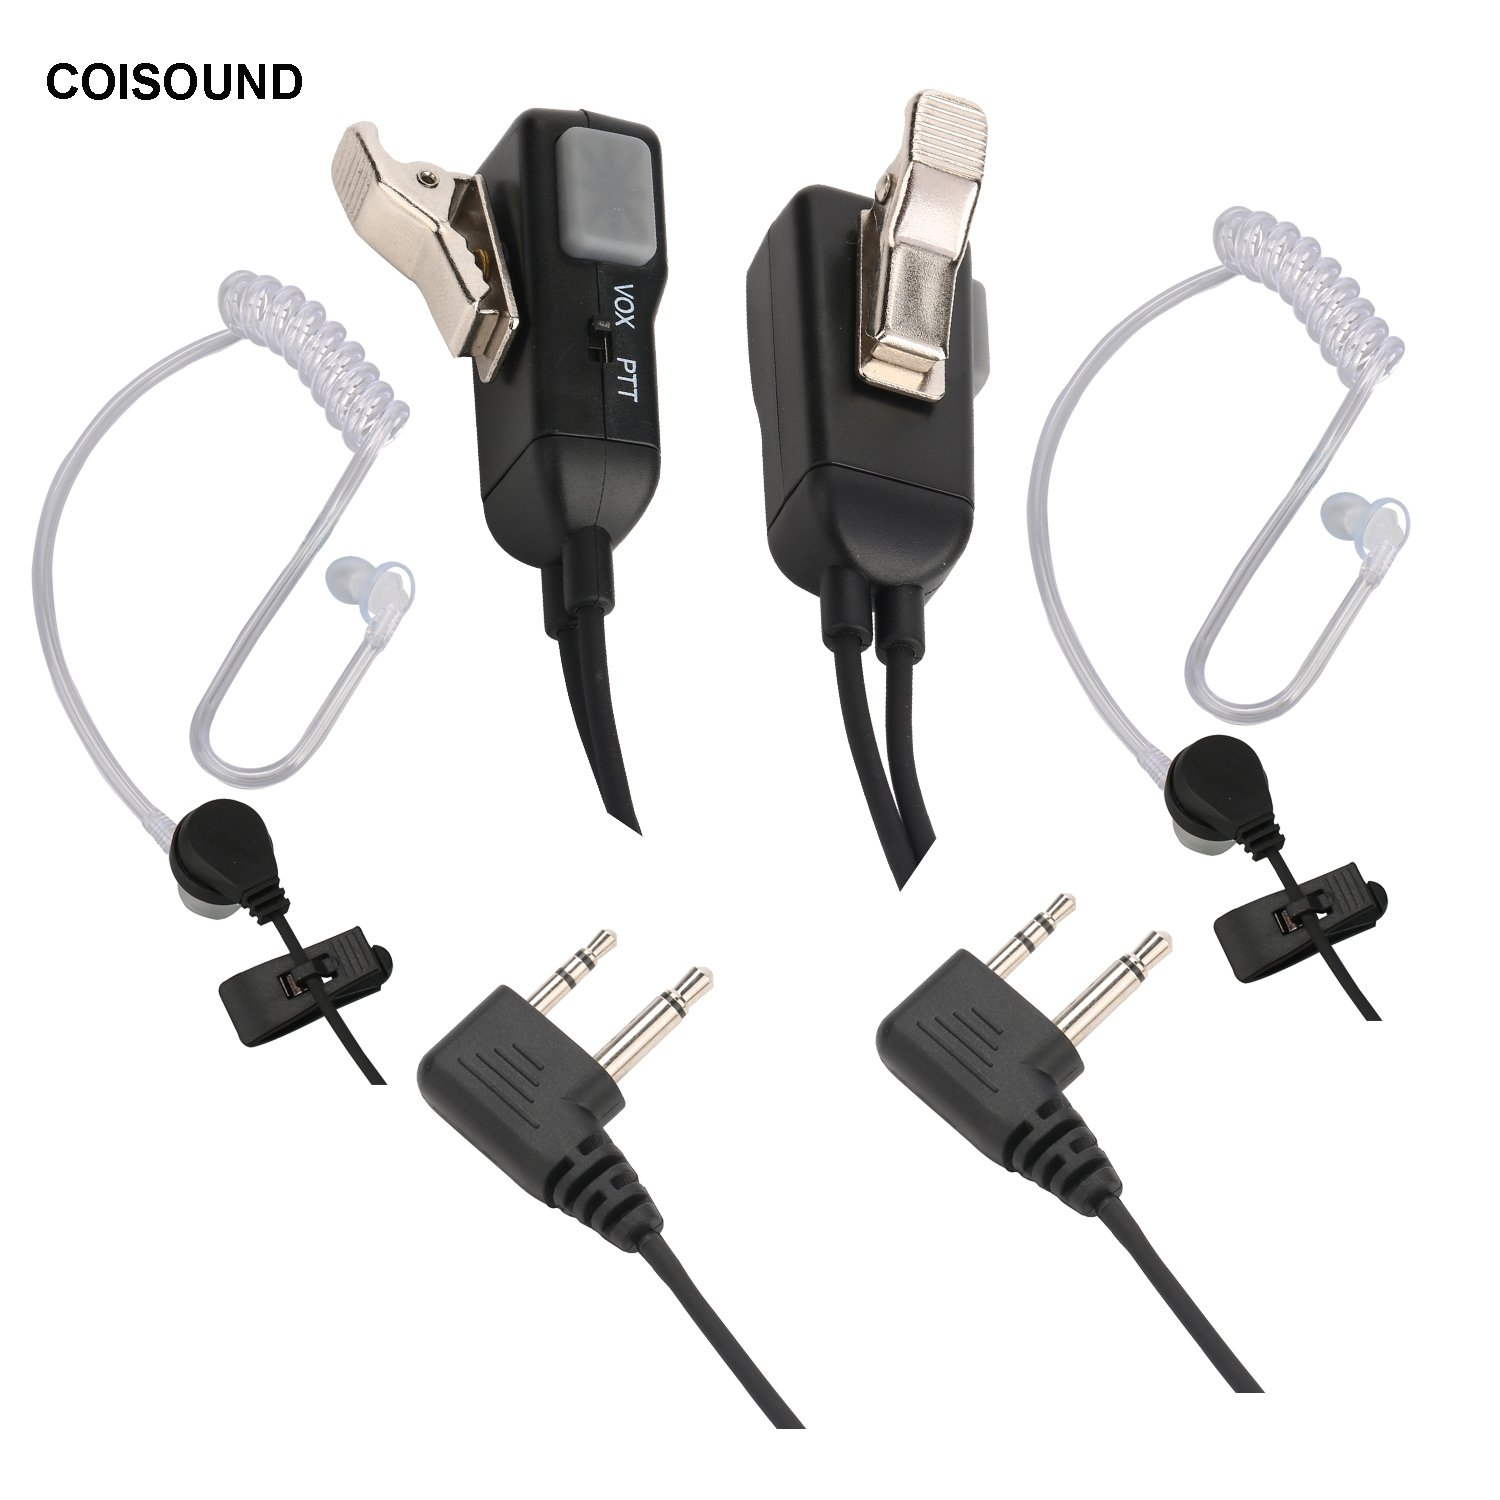 COISOUND Two way Radio Headset Noise Canceling Transparent Security  Earphones works with Midland GMRS/FRS Radios with PTT/VOX – Pair